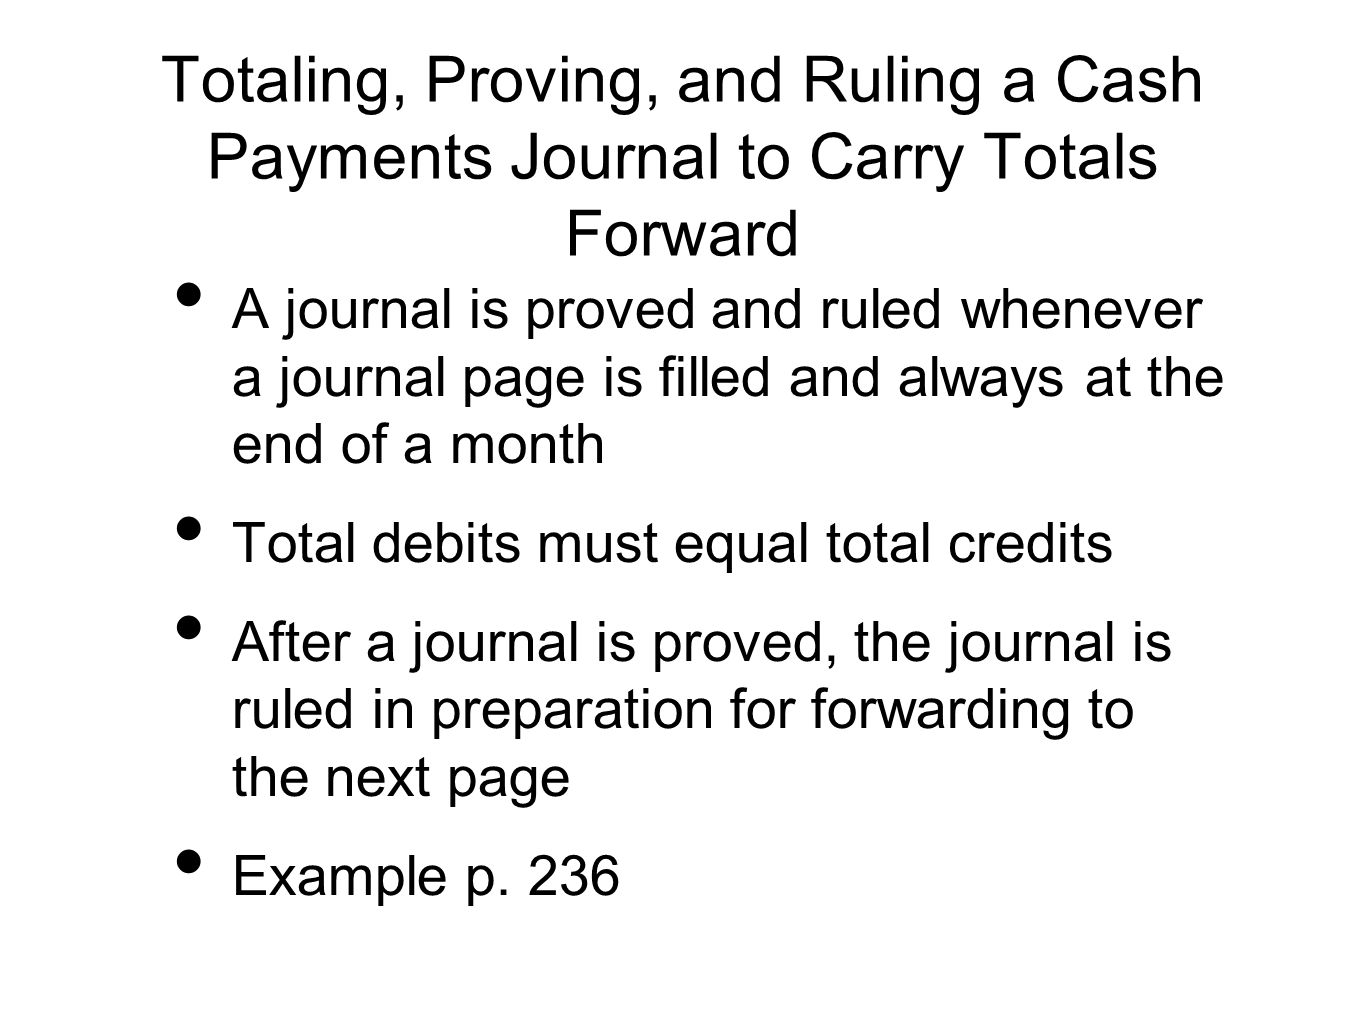 Totaling, Proving, and Ruling a Cash Payments Journal to Carry Totals Forward